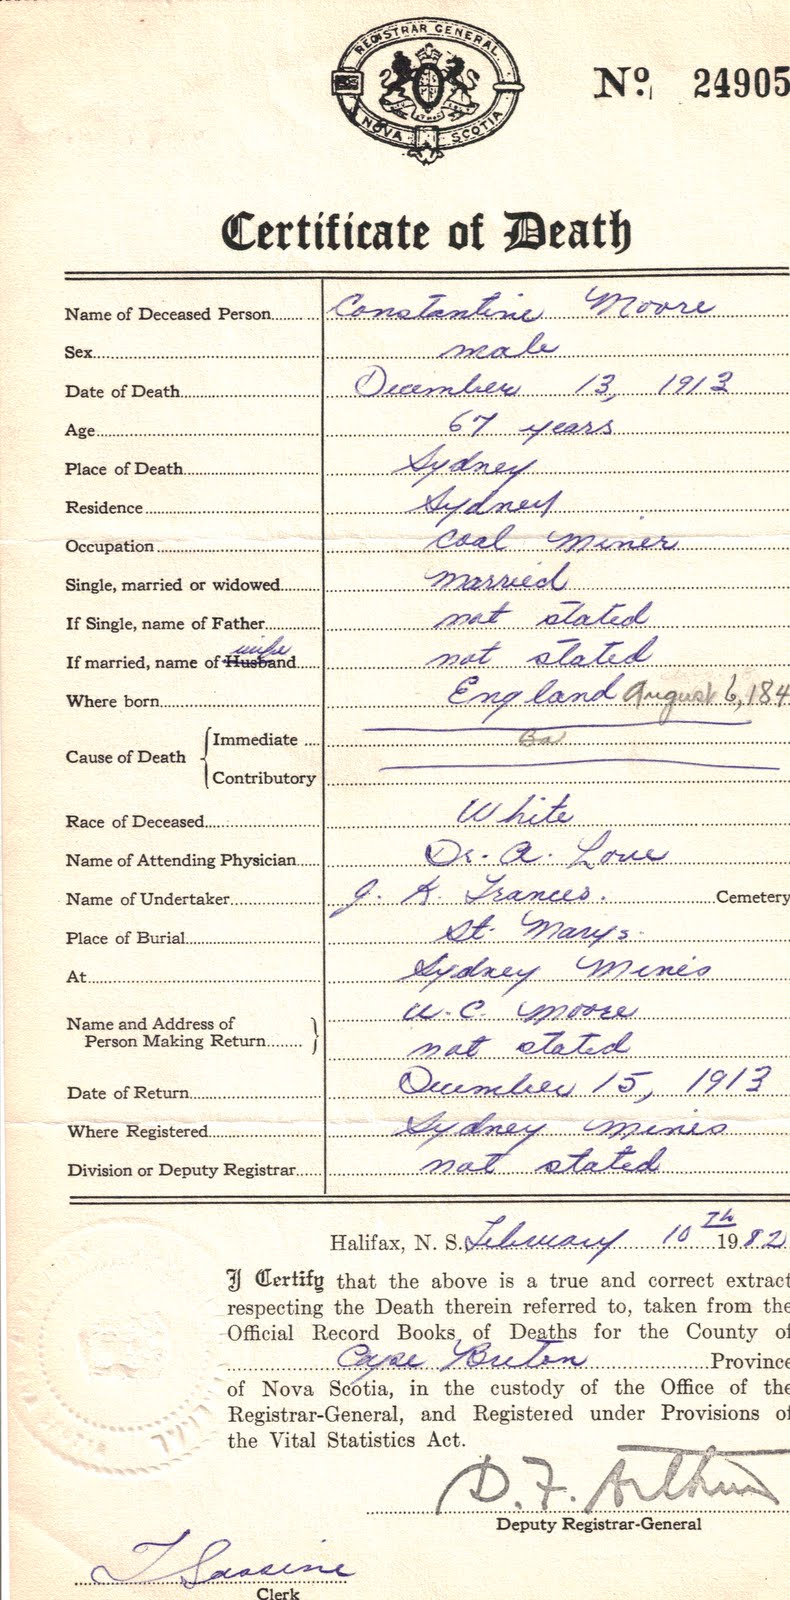 Wigan to whittier the moores family history july 2011 death certificate for constantine moore aiddatafo Gallery